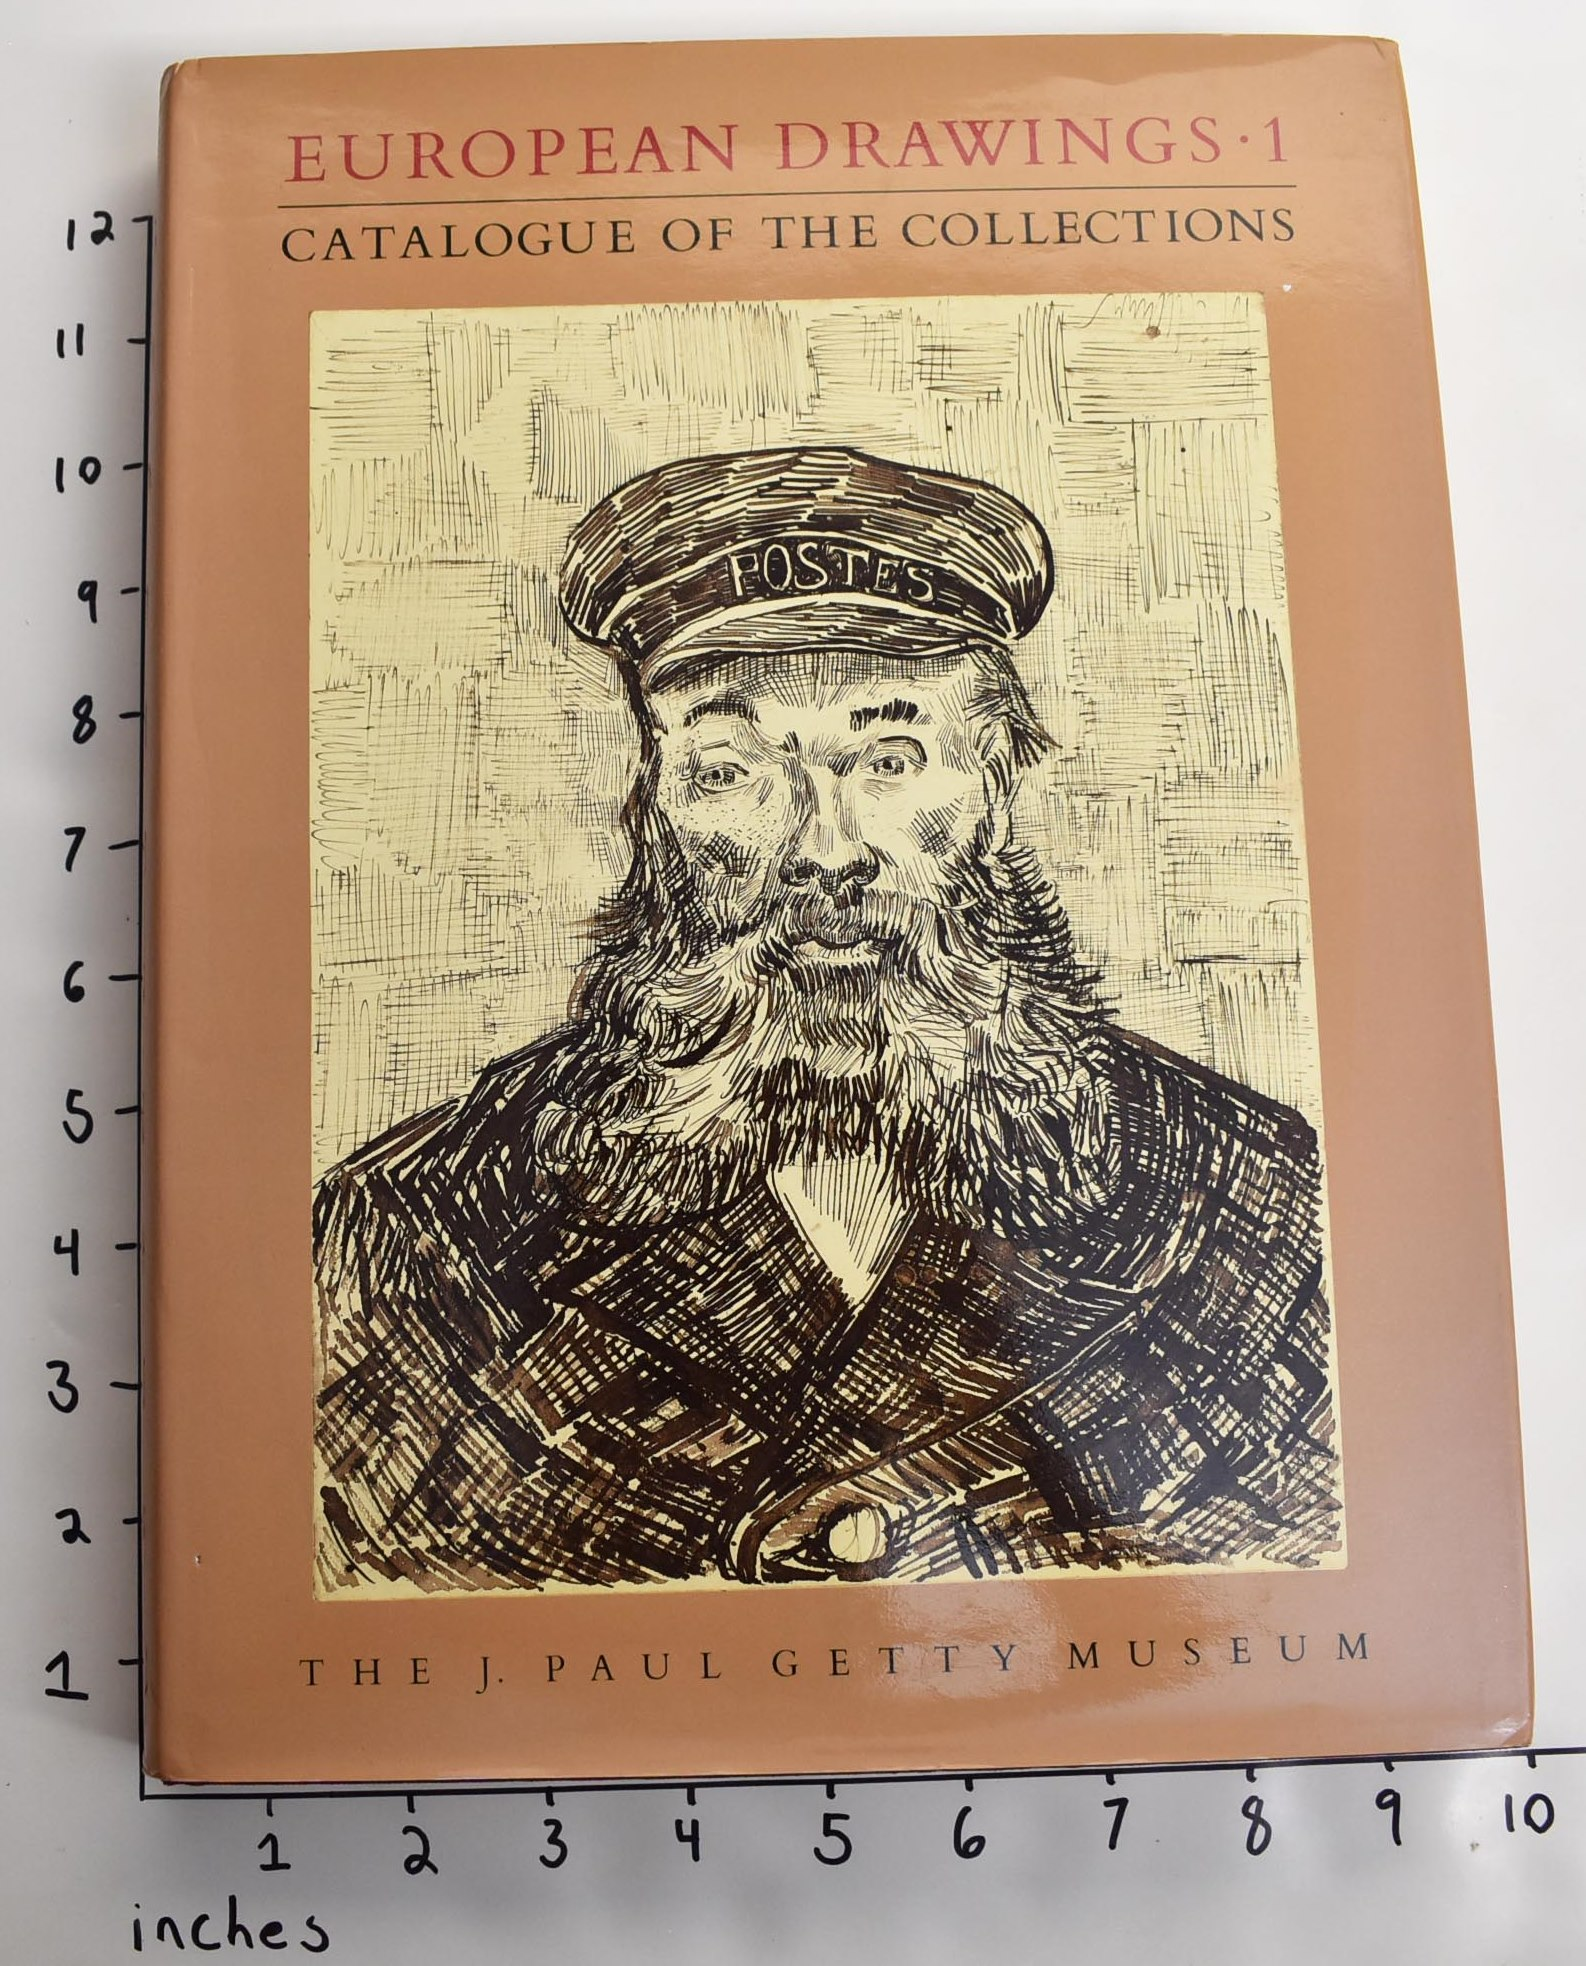 European Drawings 2: Catalogue of the Collections